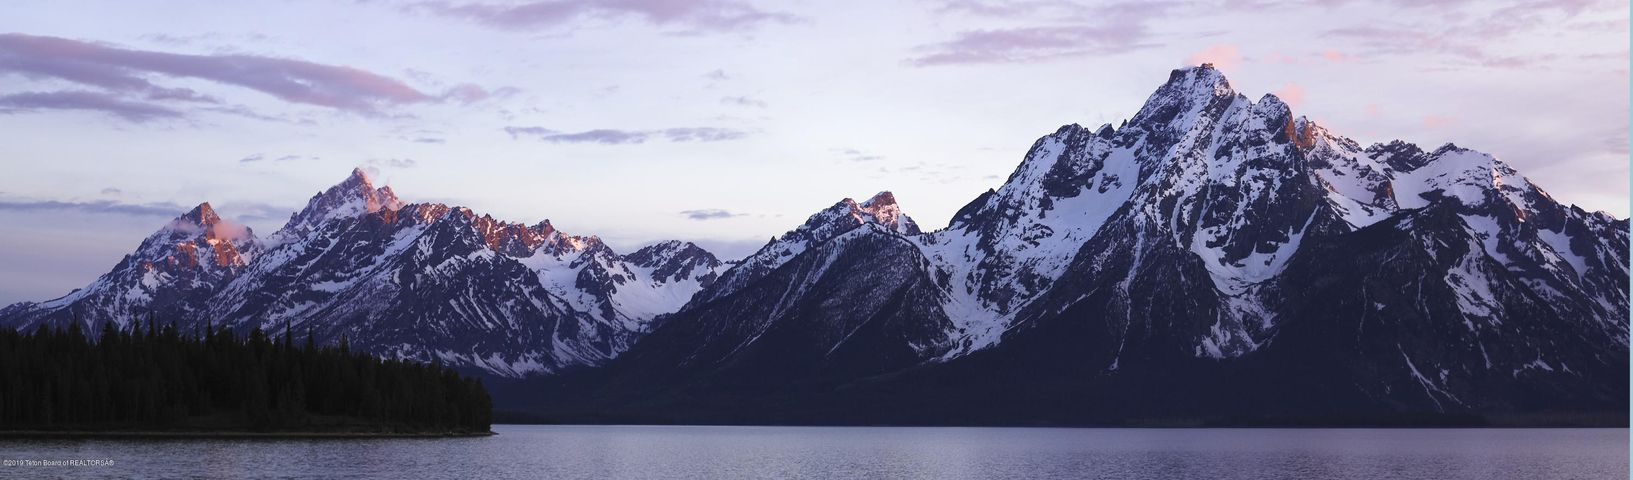 teton range with lake